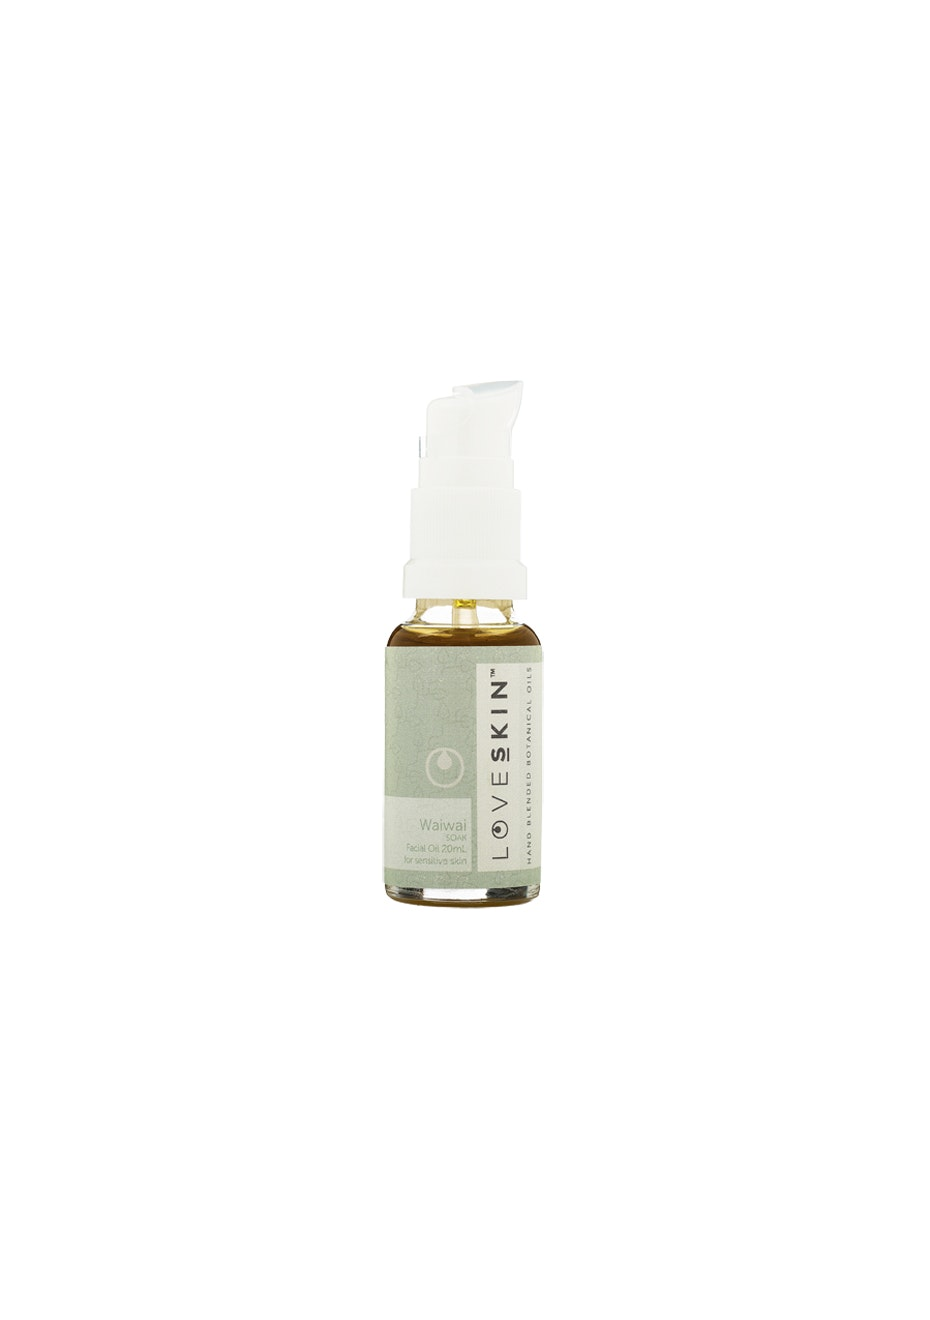 Loveskin - Waiwai Face Oil 20Ml